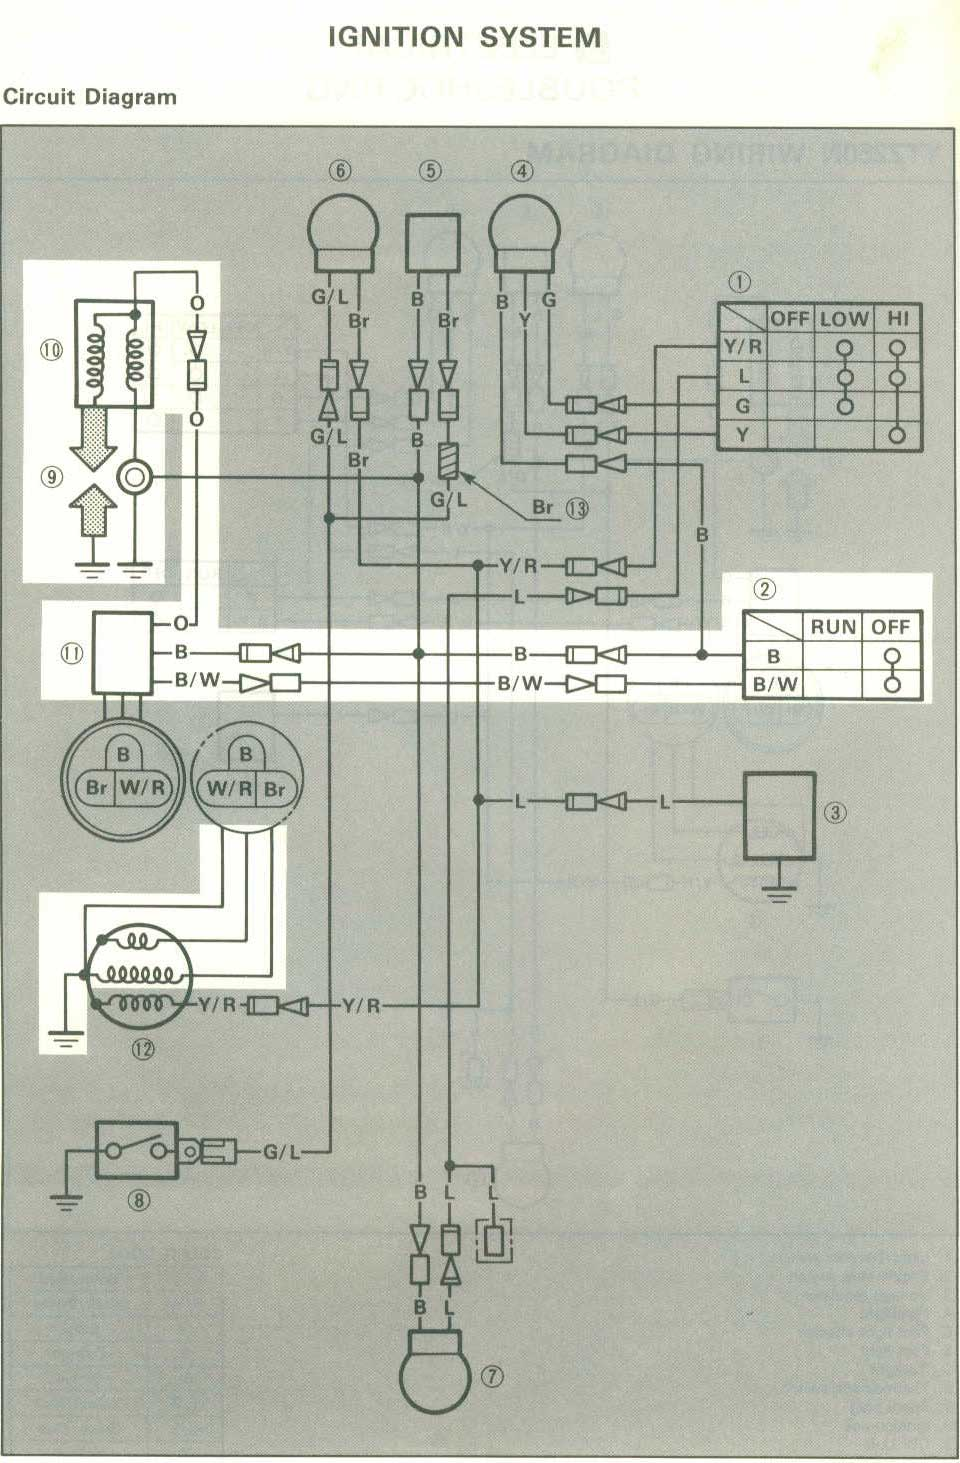 1985 Yamaha Vmax Wiring Diagram Wire Data Schema Rz350 Get Free Image About Apc Mini Chopper 49cc